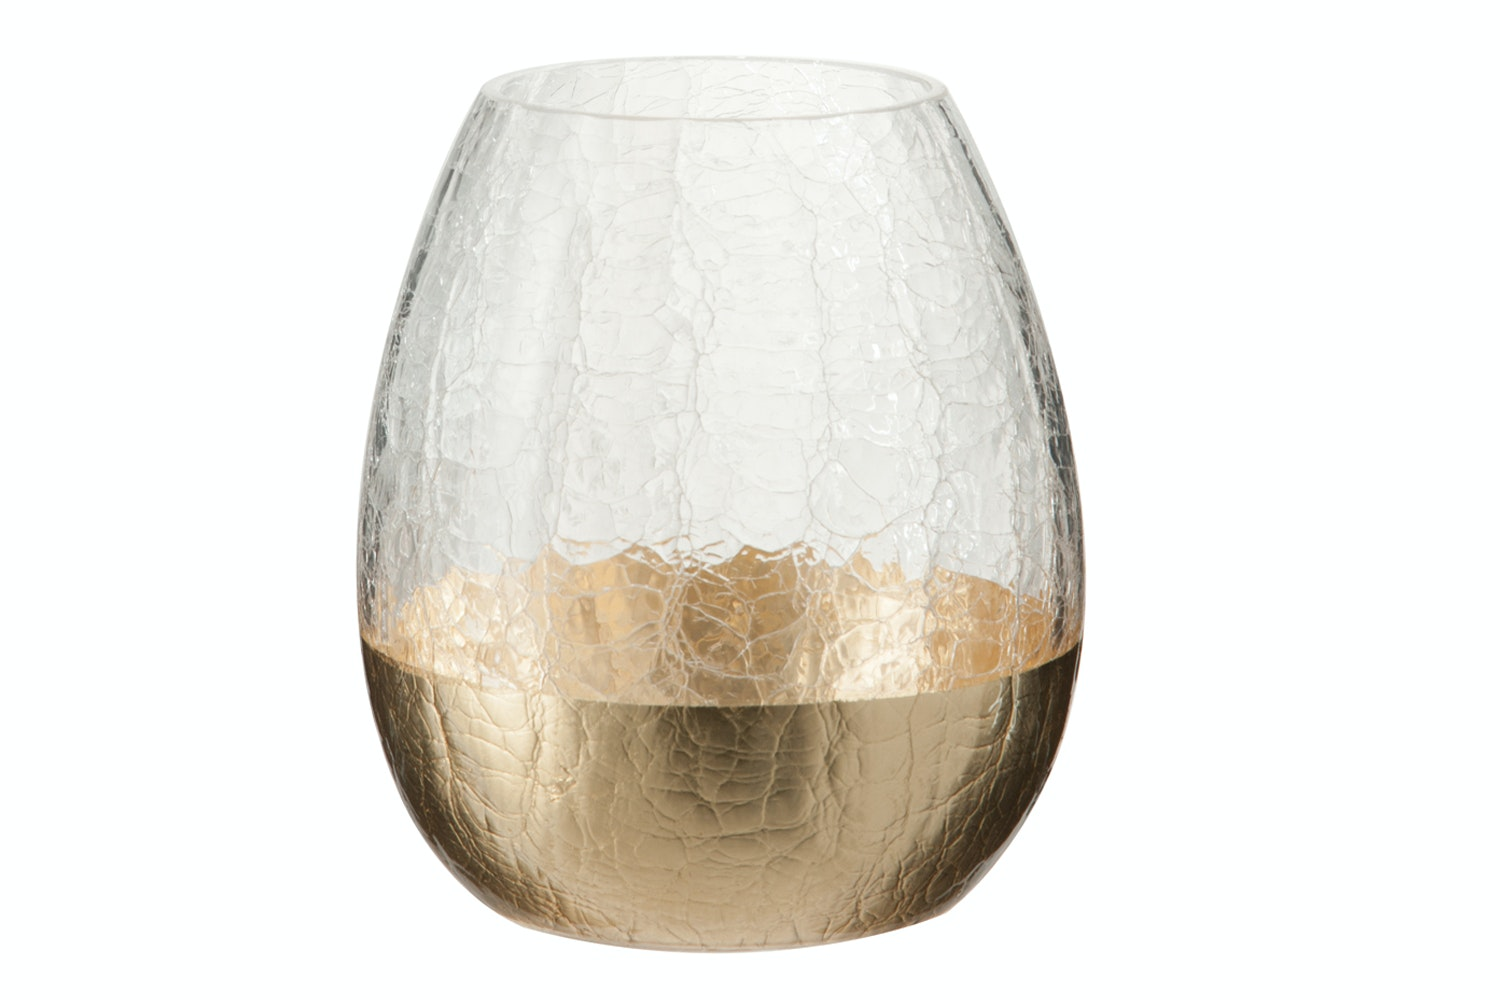 Cracked Effect Hurricane With Gold Dip | Small